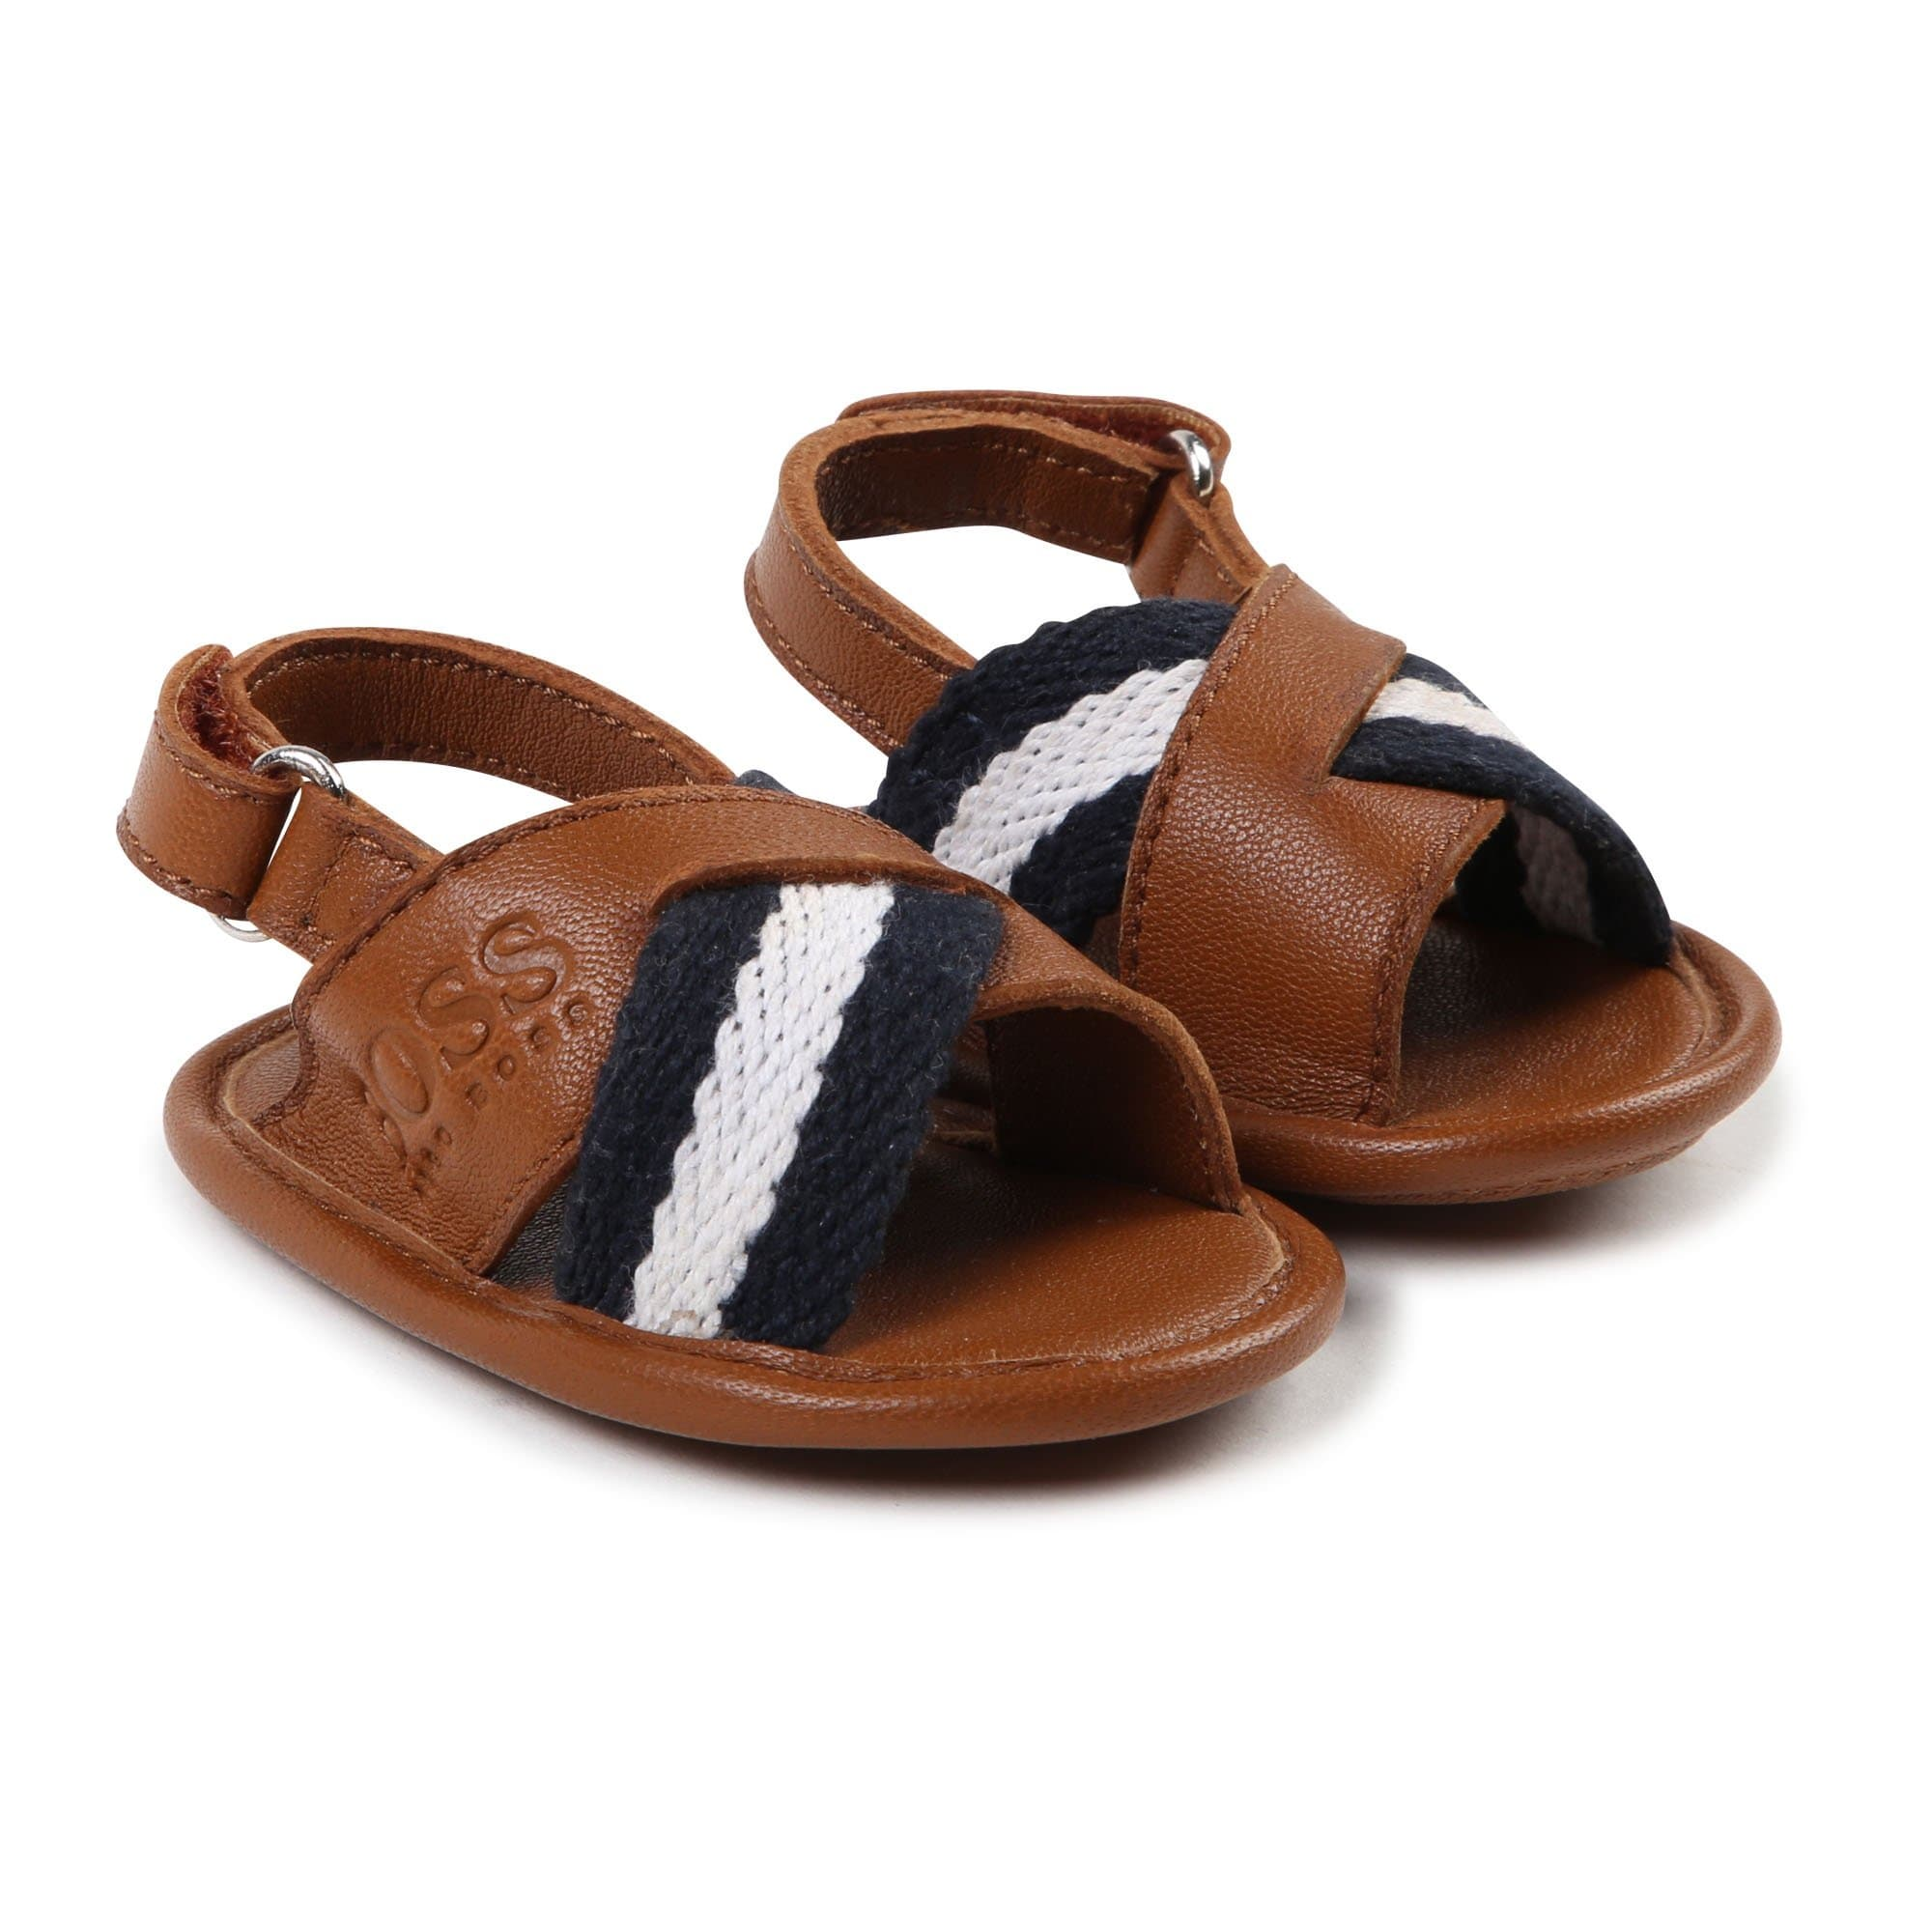 Hugo Boss Baby Boys Sandals (4703480512643)